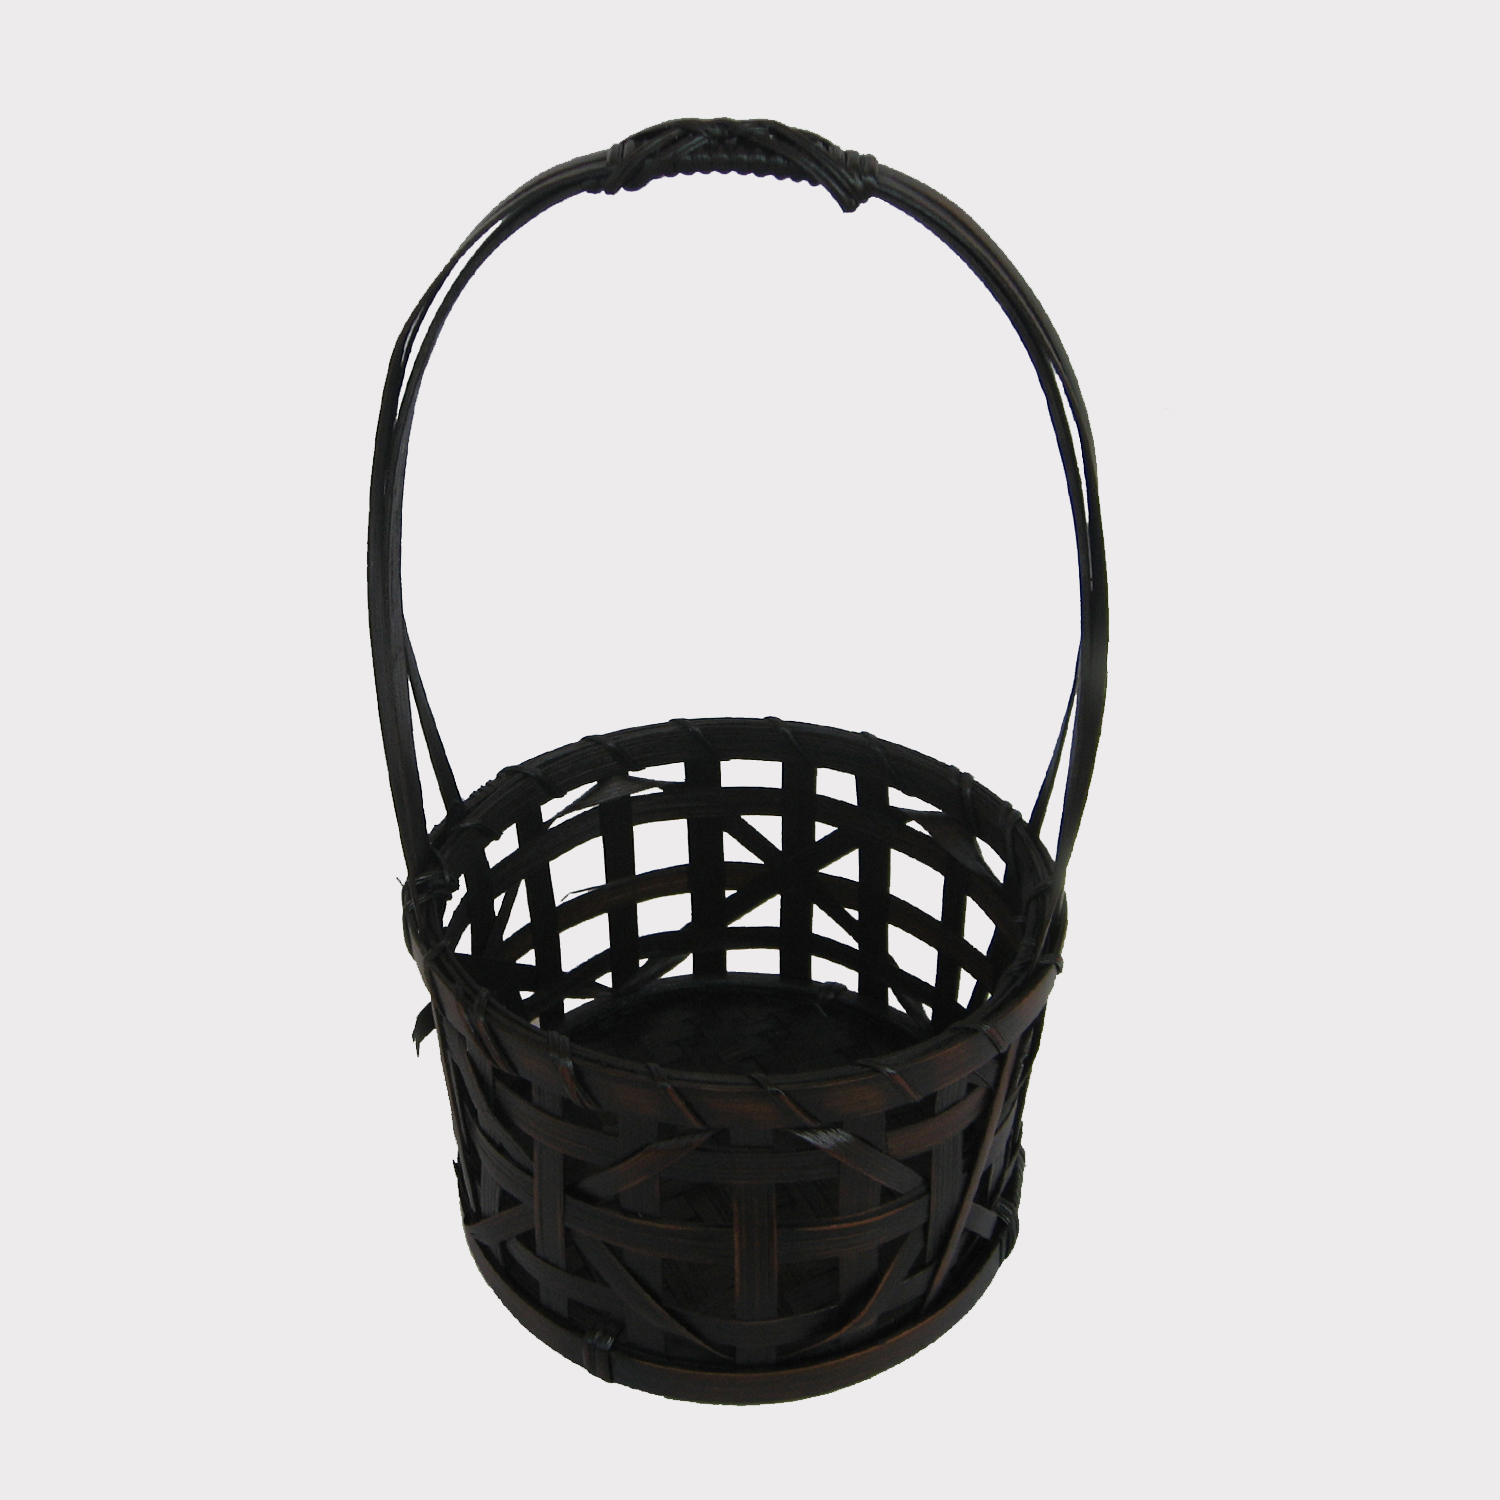 Flower Basket 110860